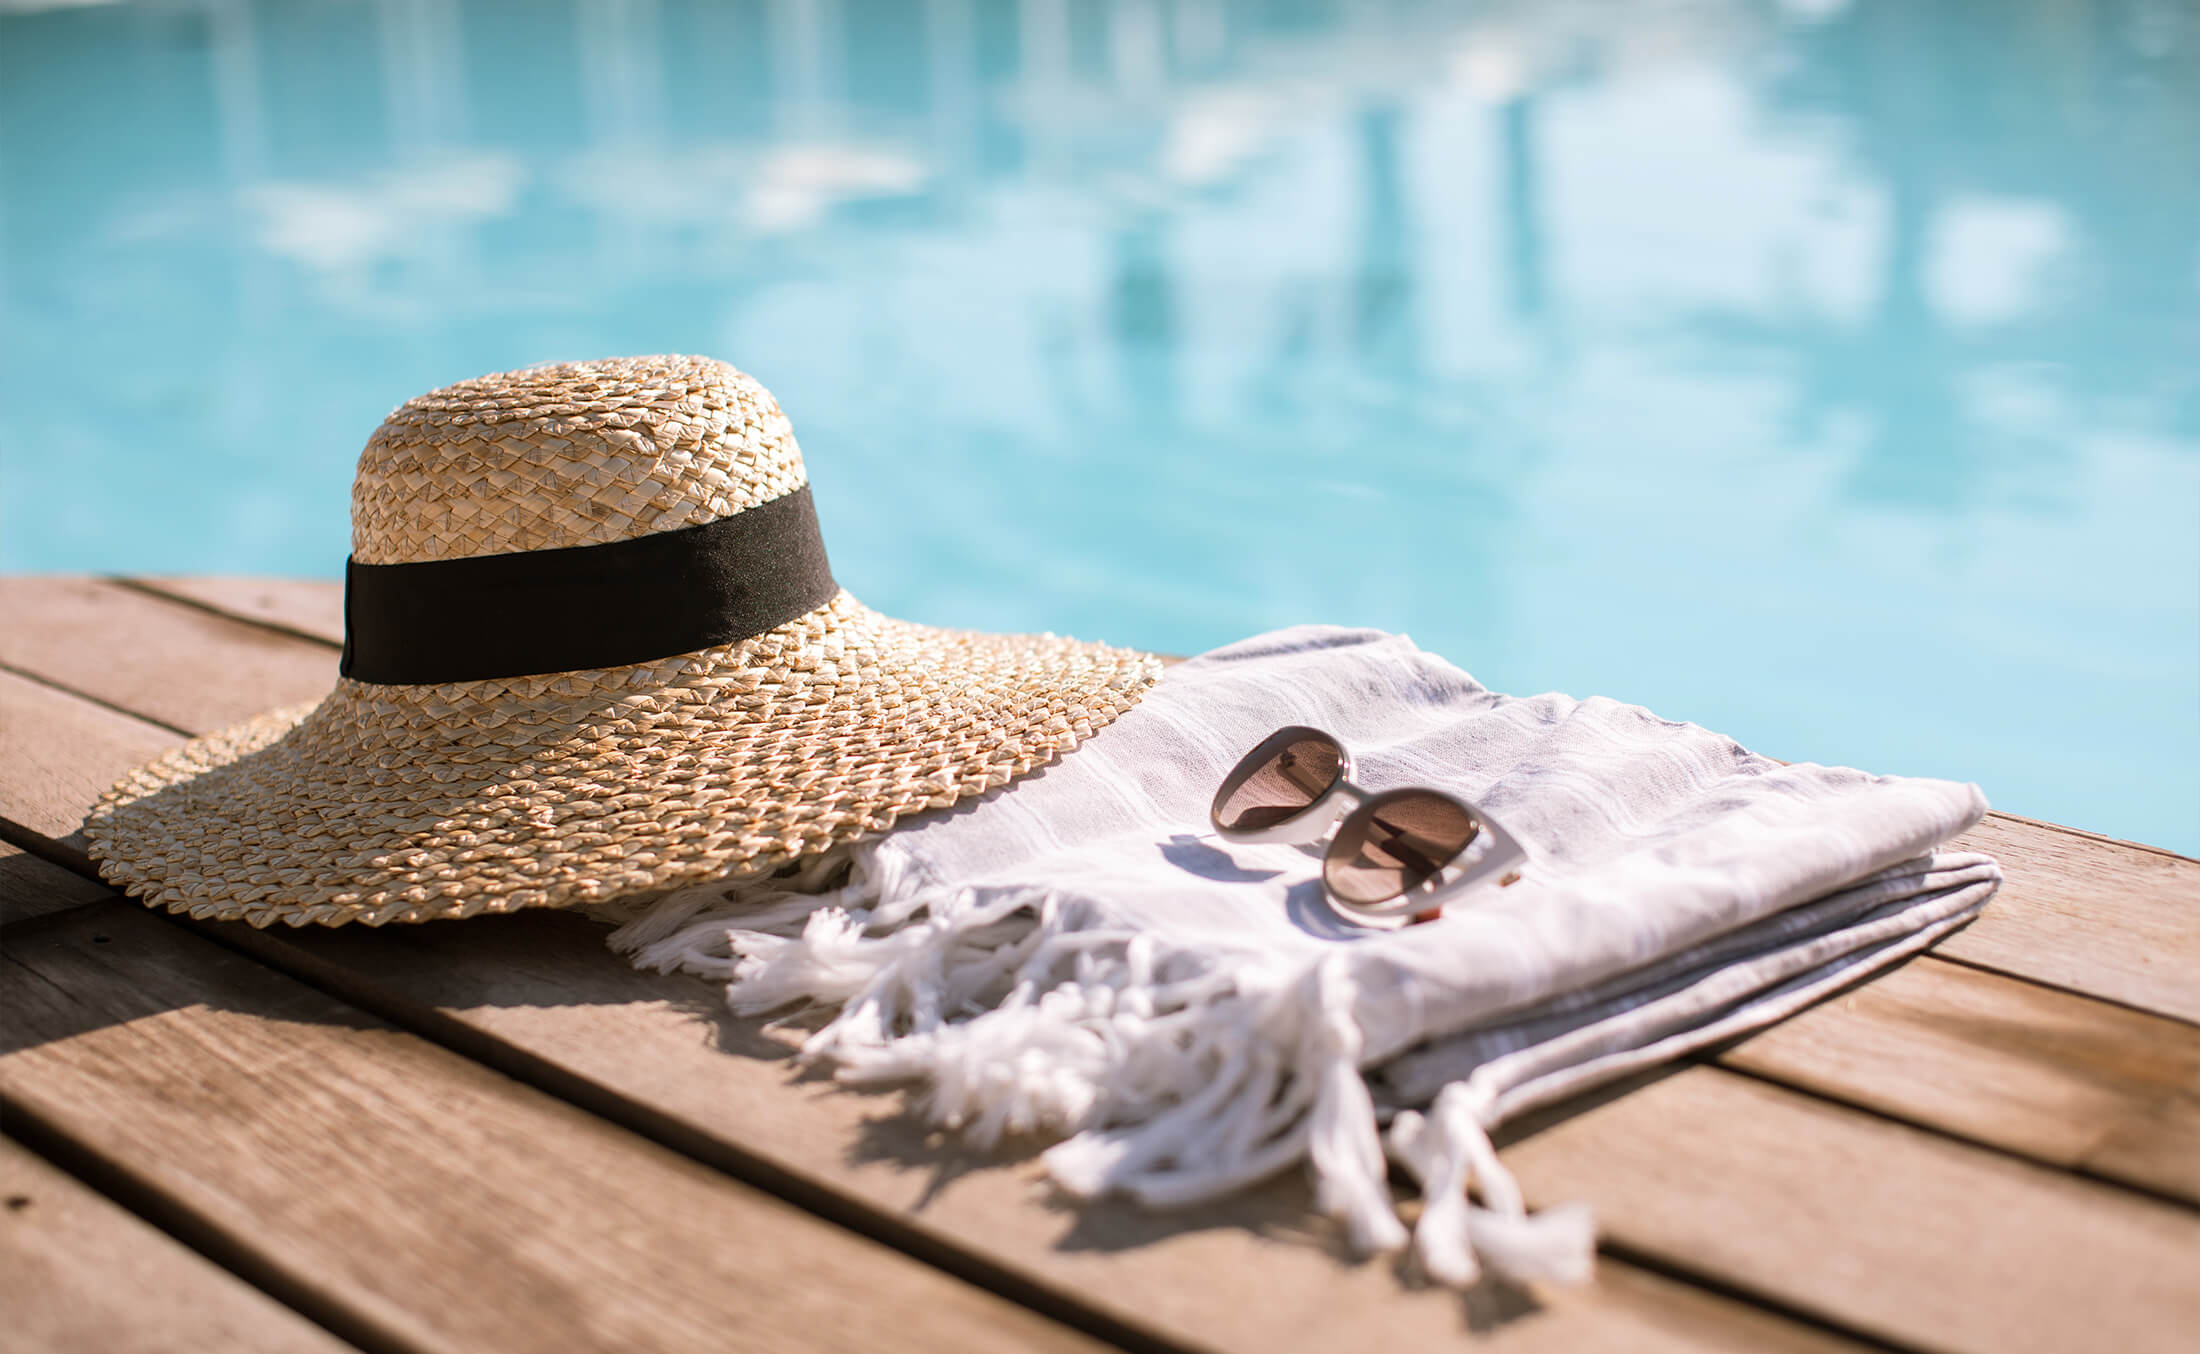 Limestone ridge apartments apartments in big spring tx - Olive garden spring hill tennessee ...